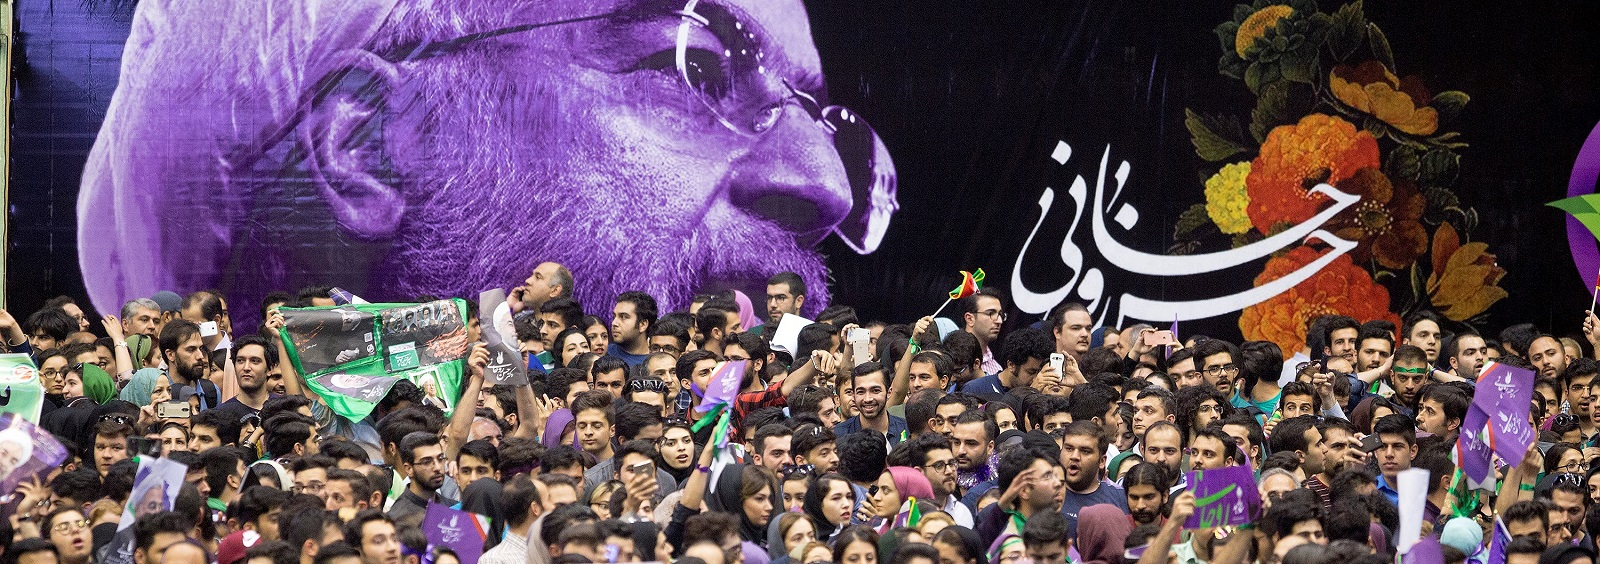 Supporters of Iranian President and presidential candidate Hassan Rouhani at a campaign rally last week in Tehran (Photo: Majid Saeedi/Getty) Iran.